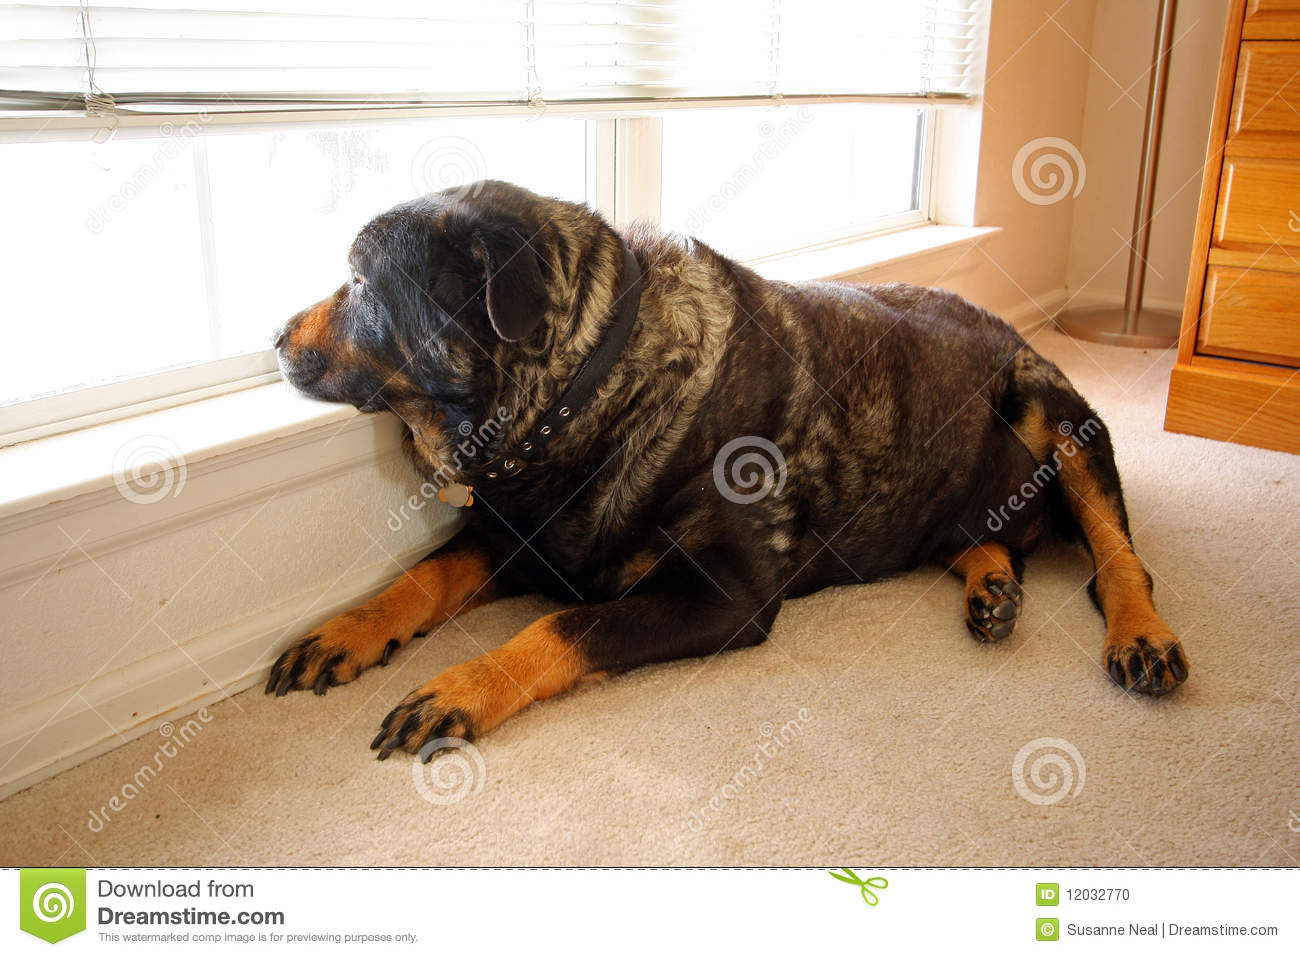 A big old rottweiler gazes out a bright very low window he probably wishes he were young again and could run around outside